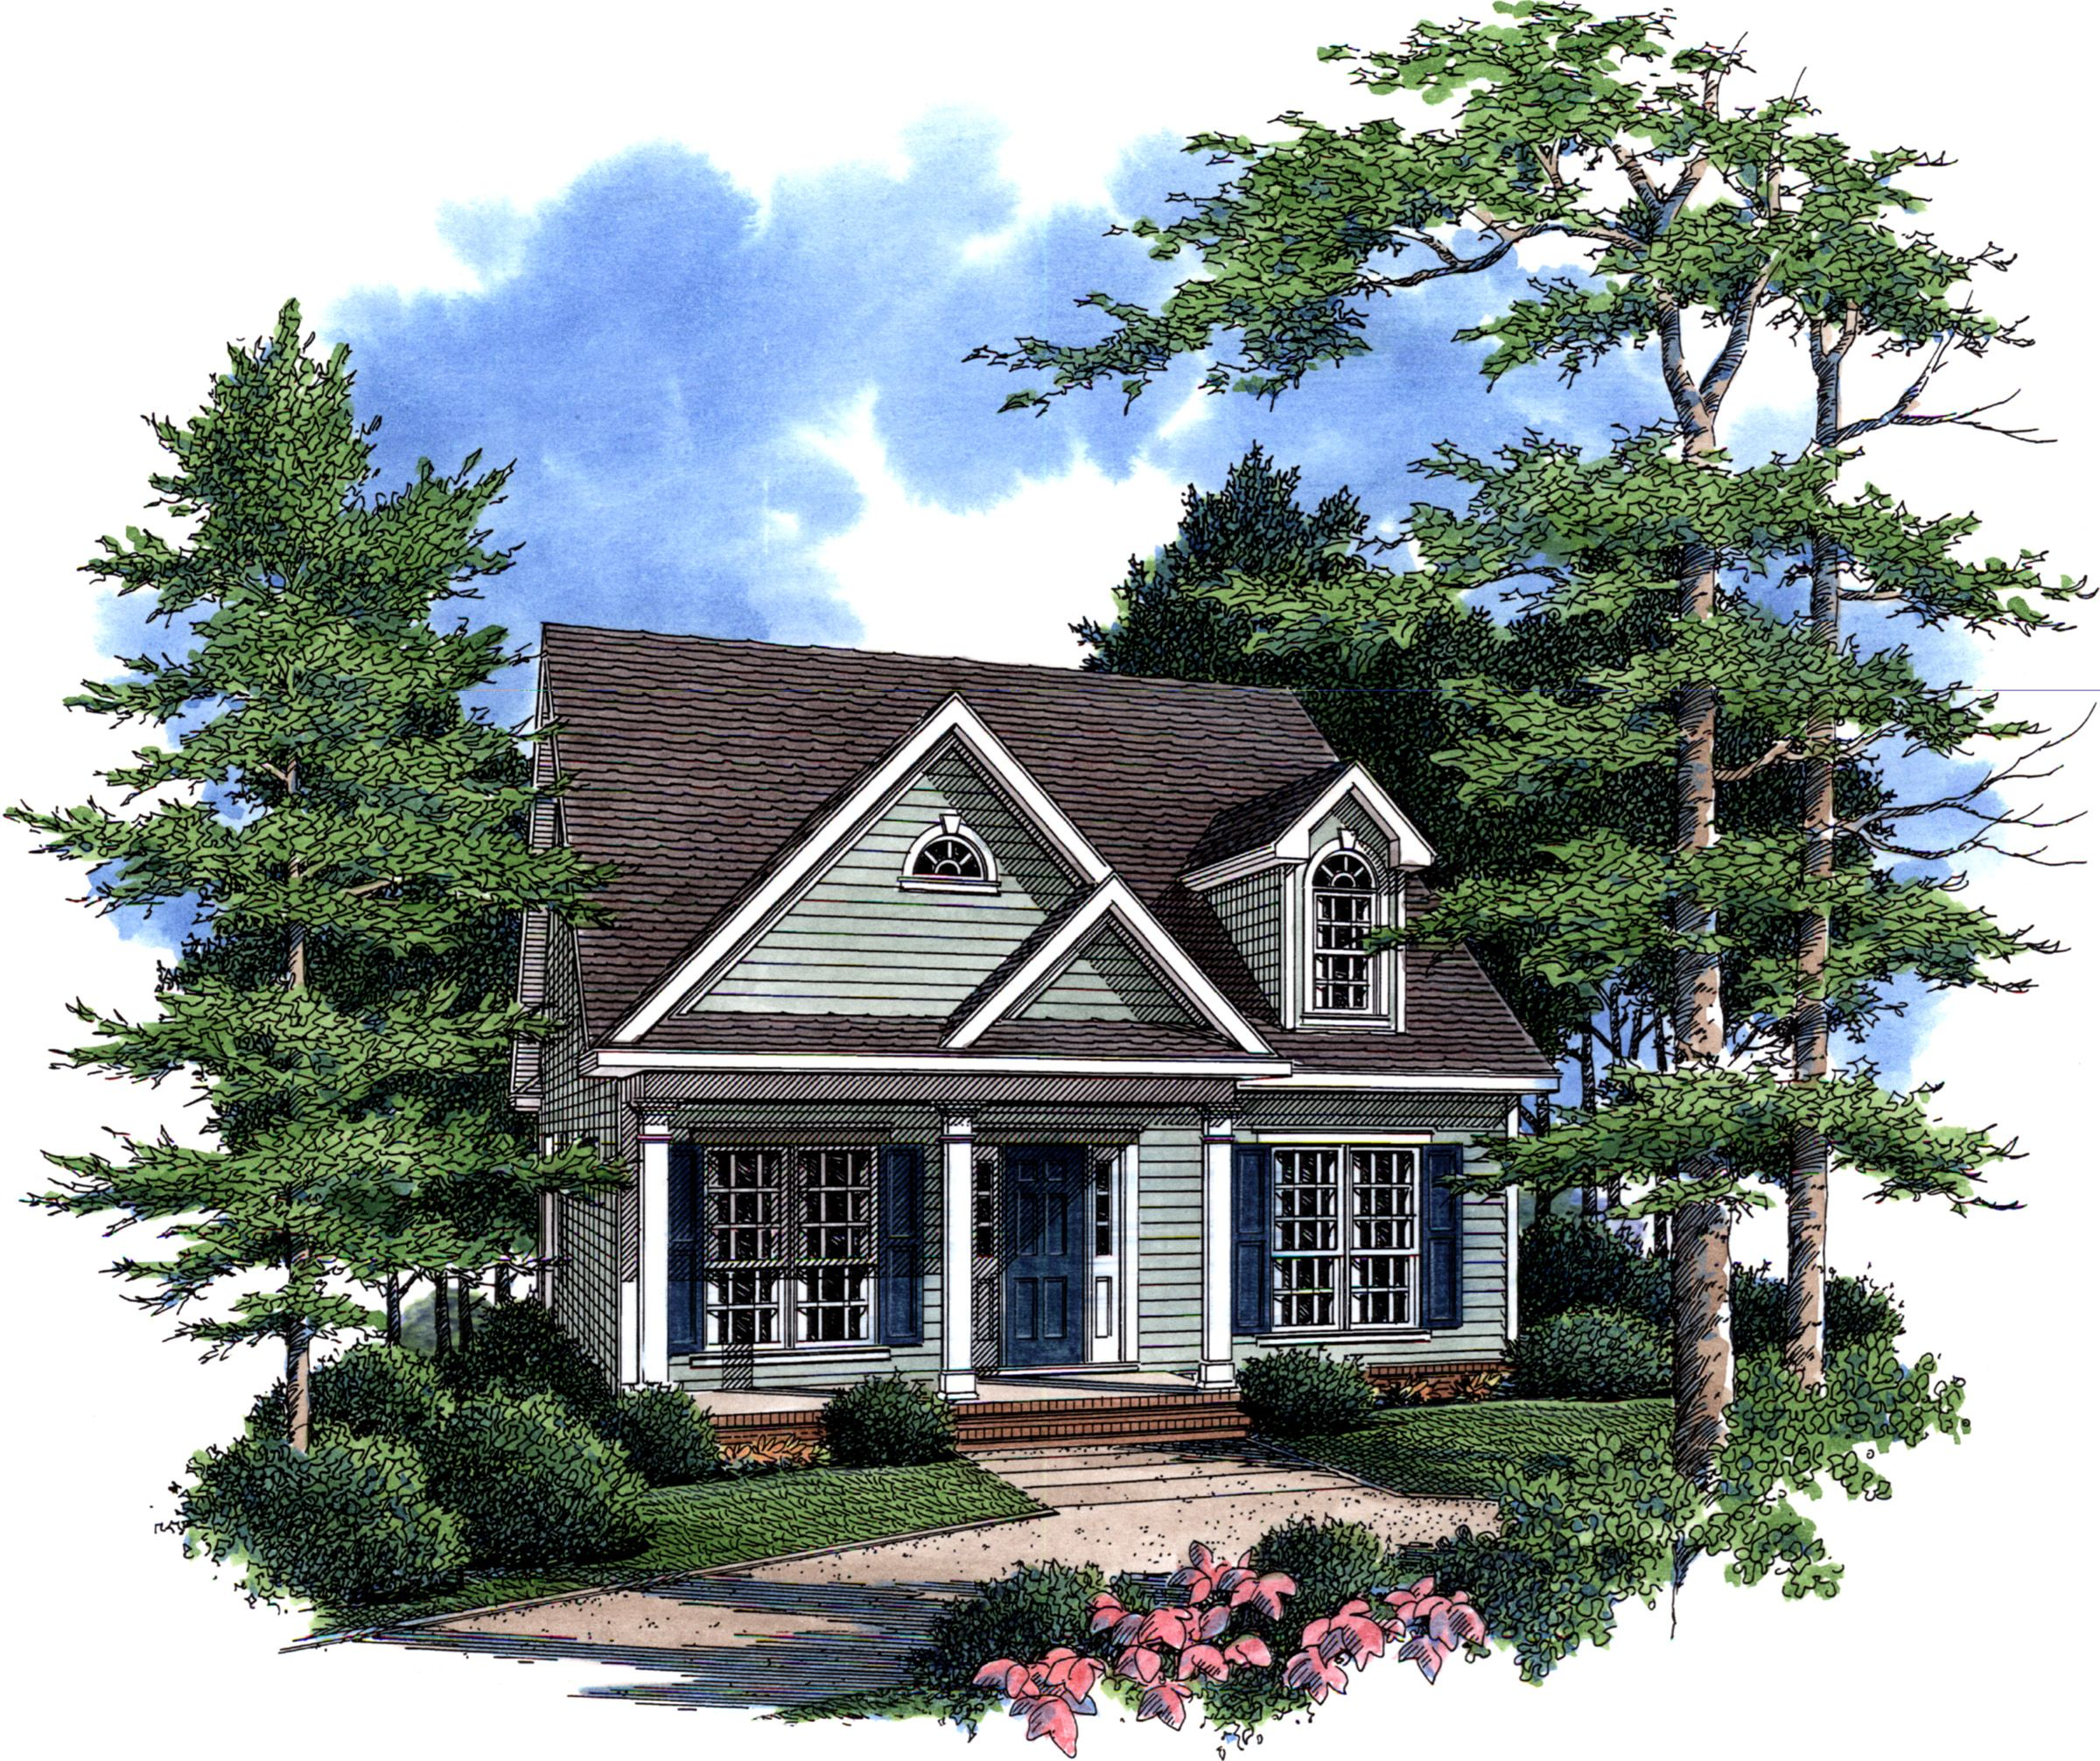 Plan 6068rc Rustic Country Cottage Cottage House Plans Cottage Style House Plans Beach Style House Plans